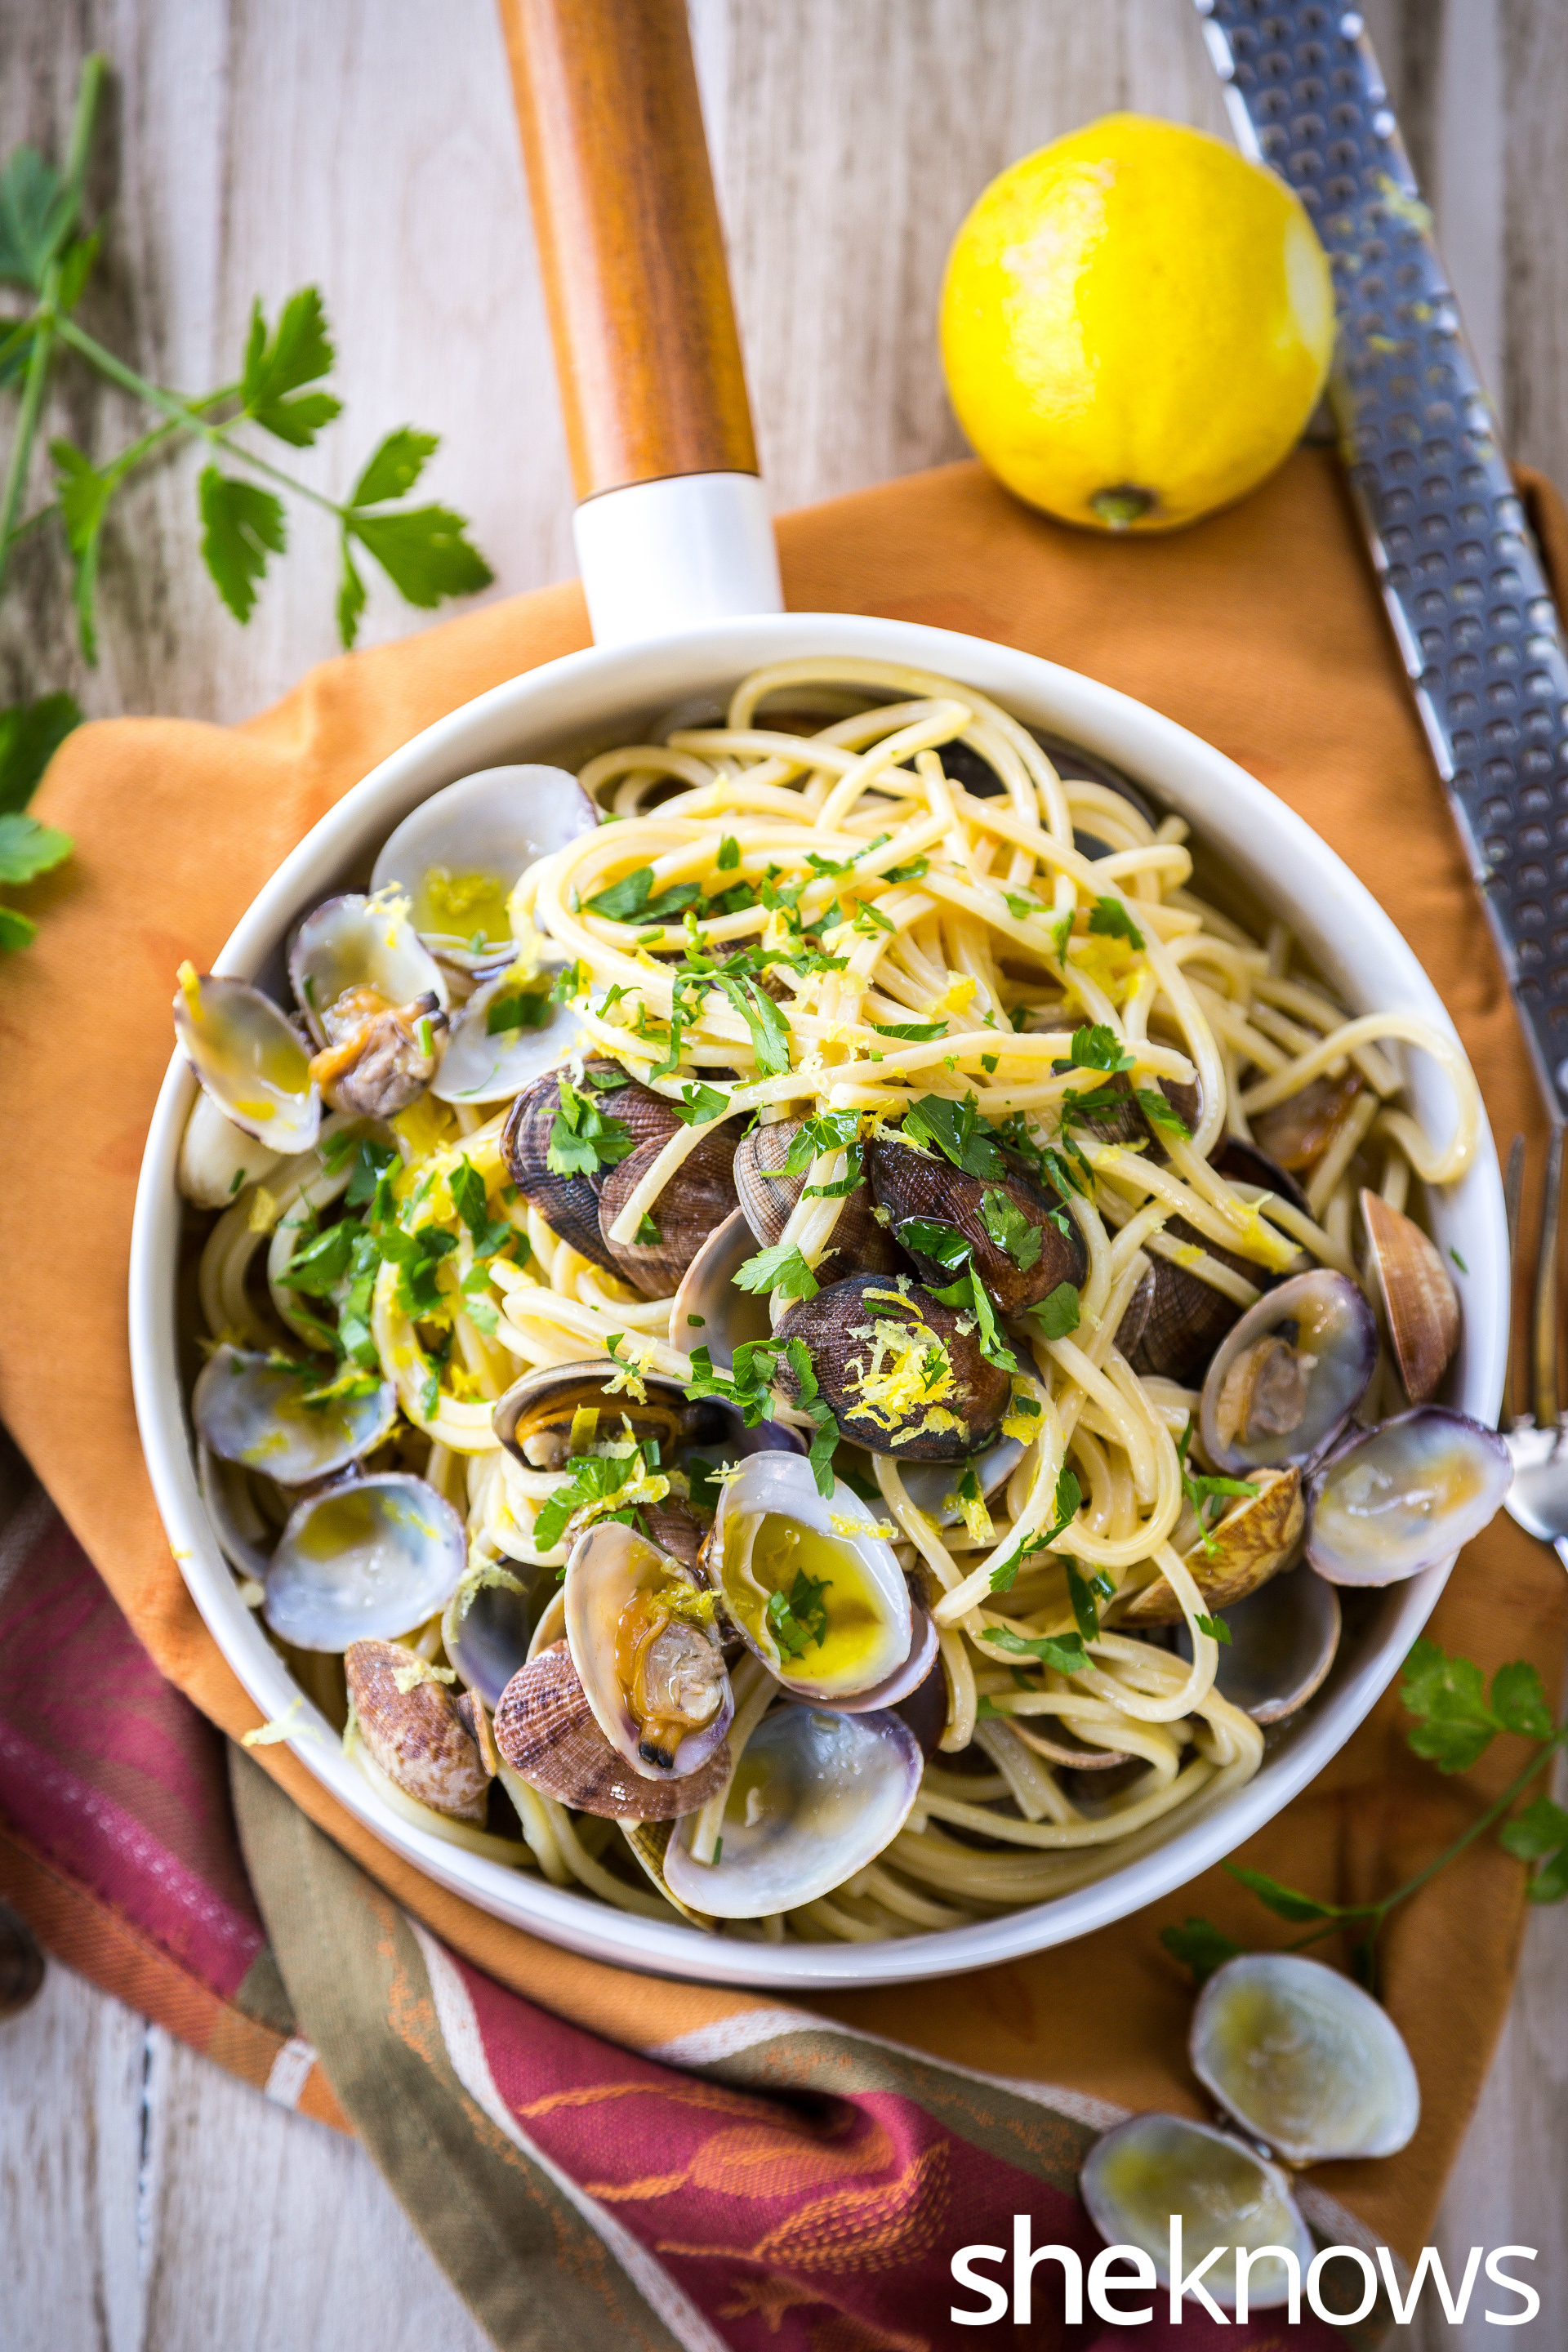 Spaghetti-with-vongol-lemon-zest-and-rosè-wine-top